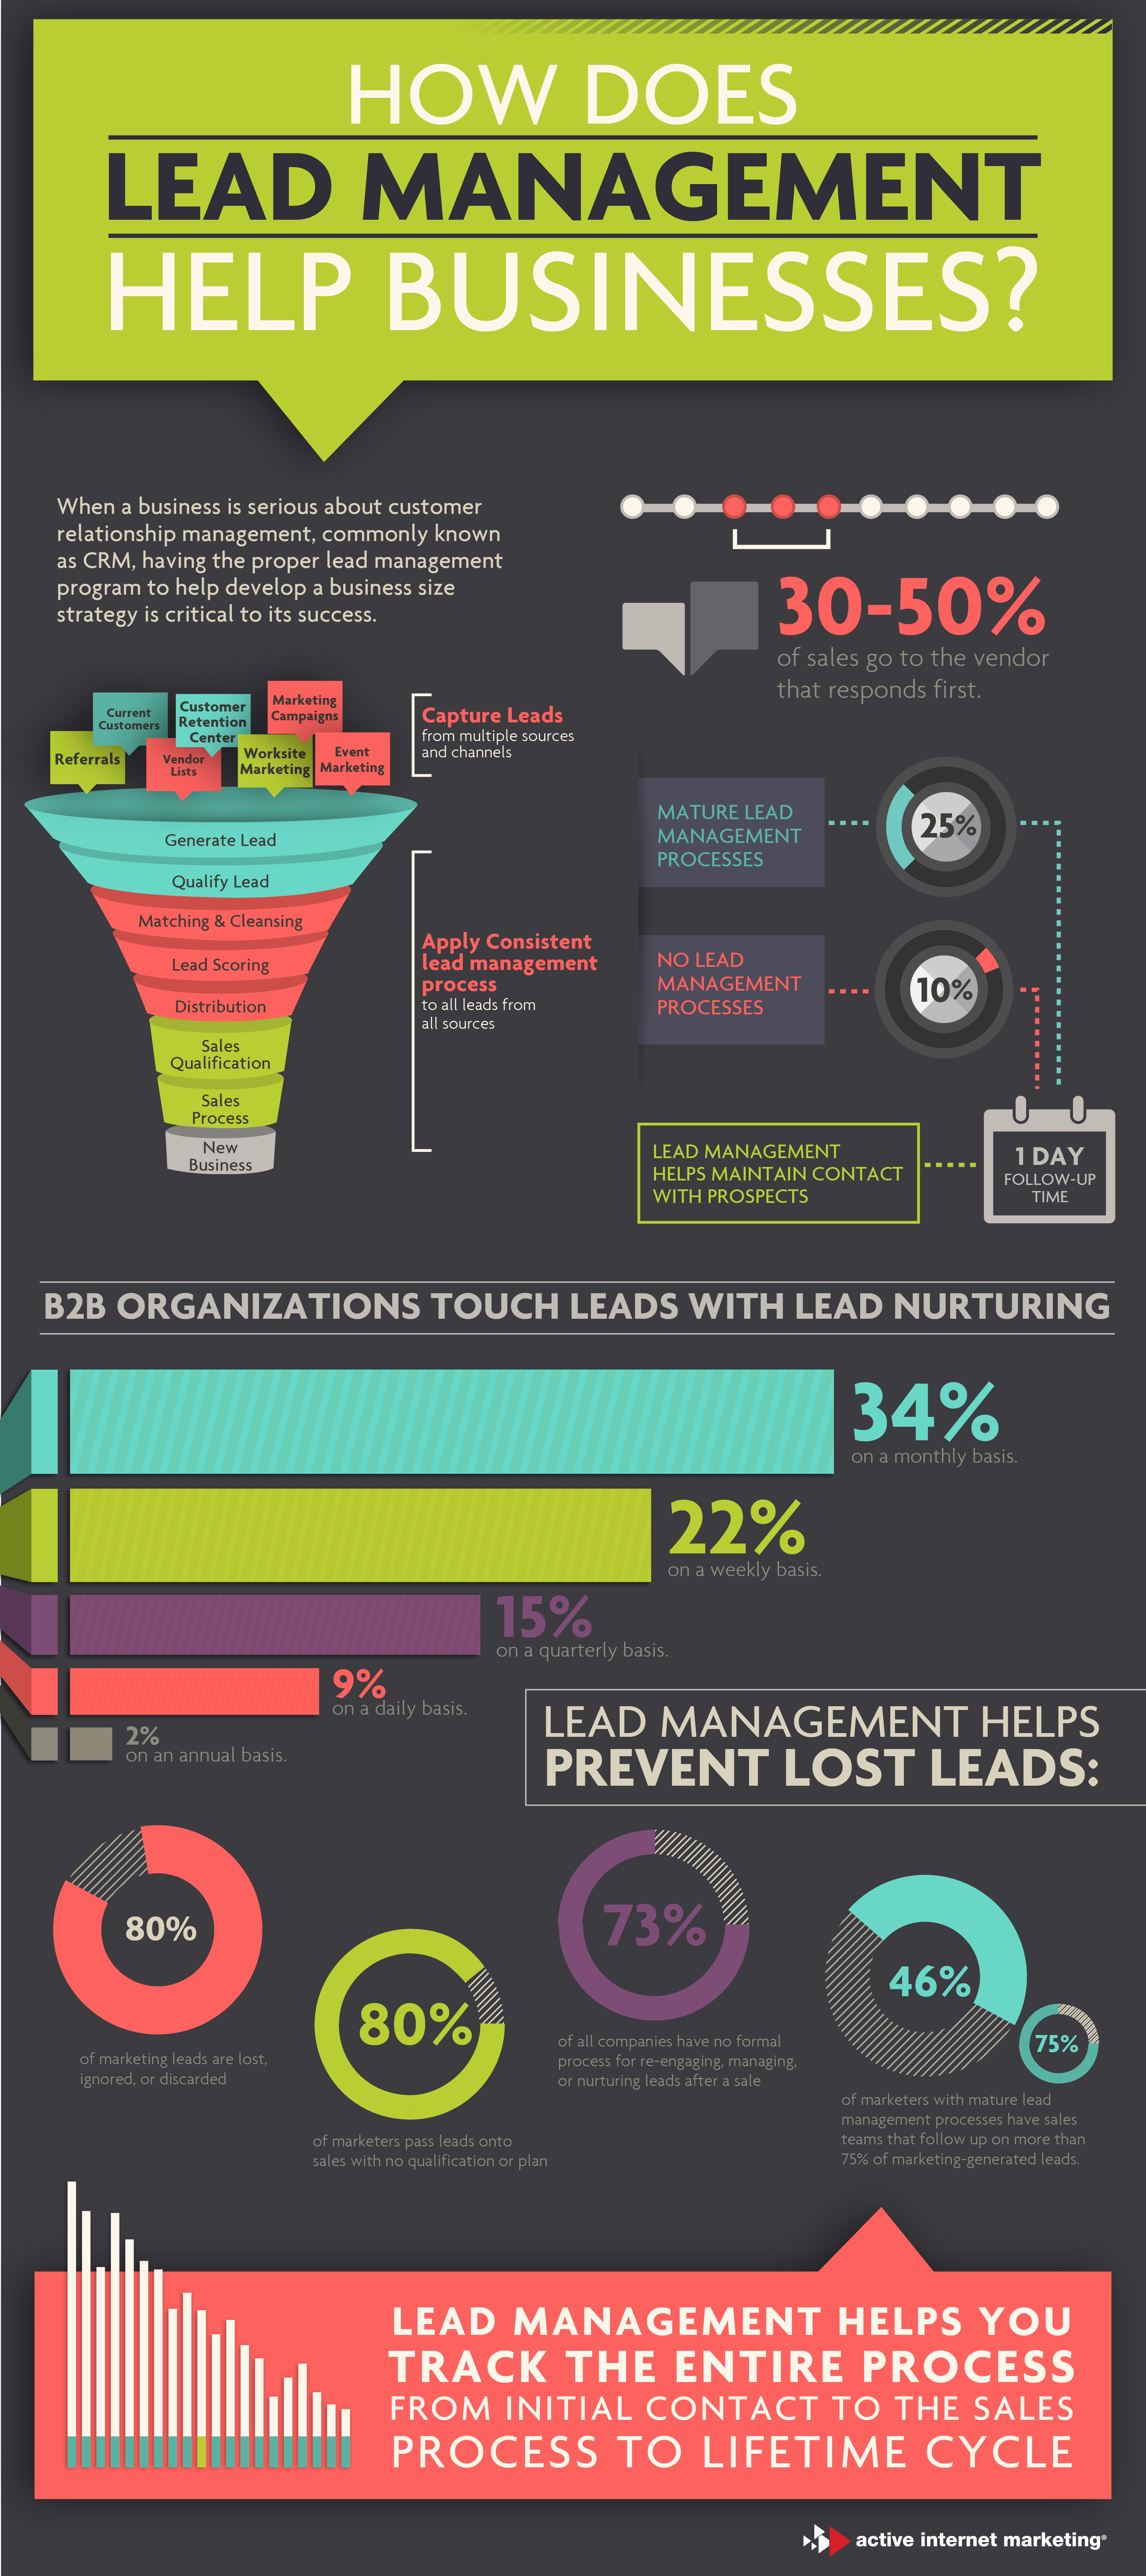 How lead management helps businesses